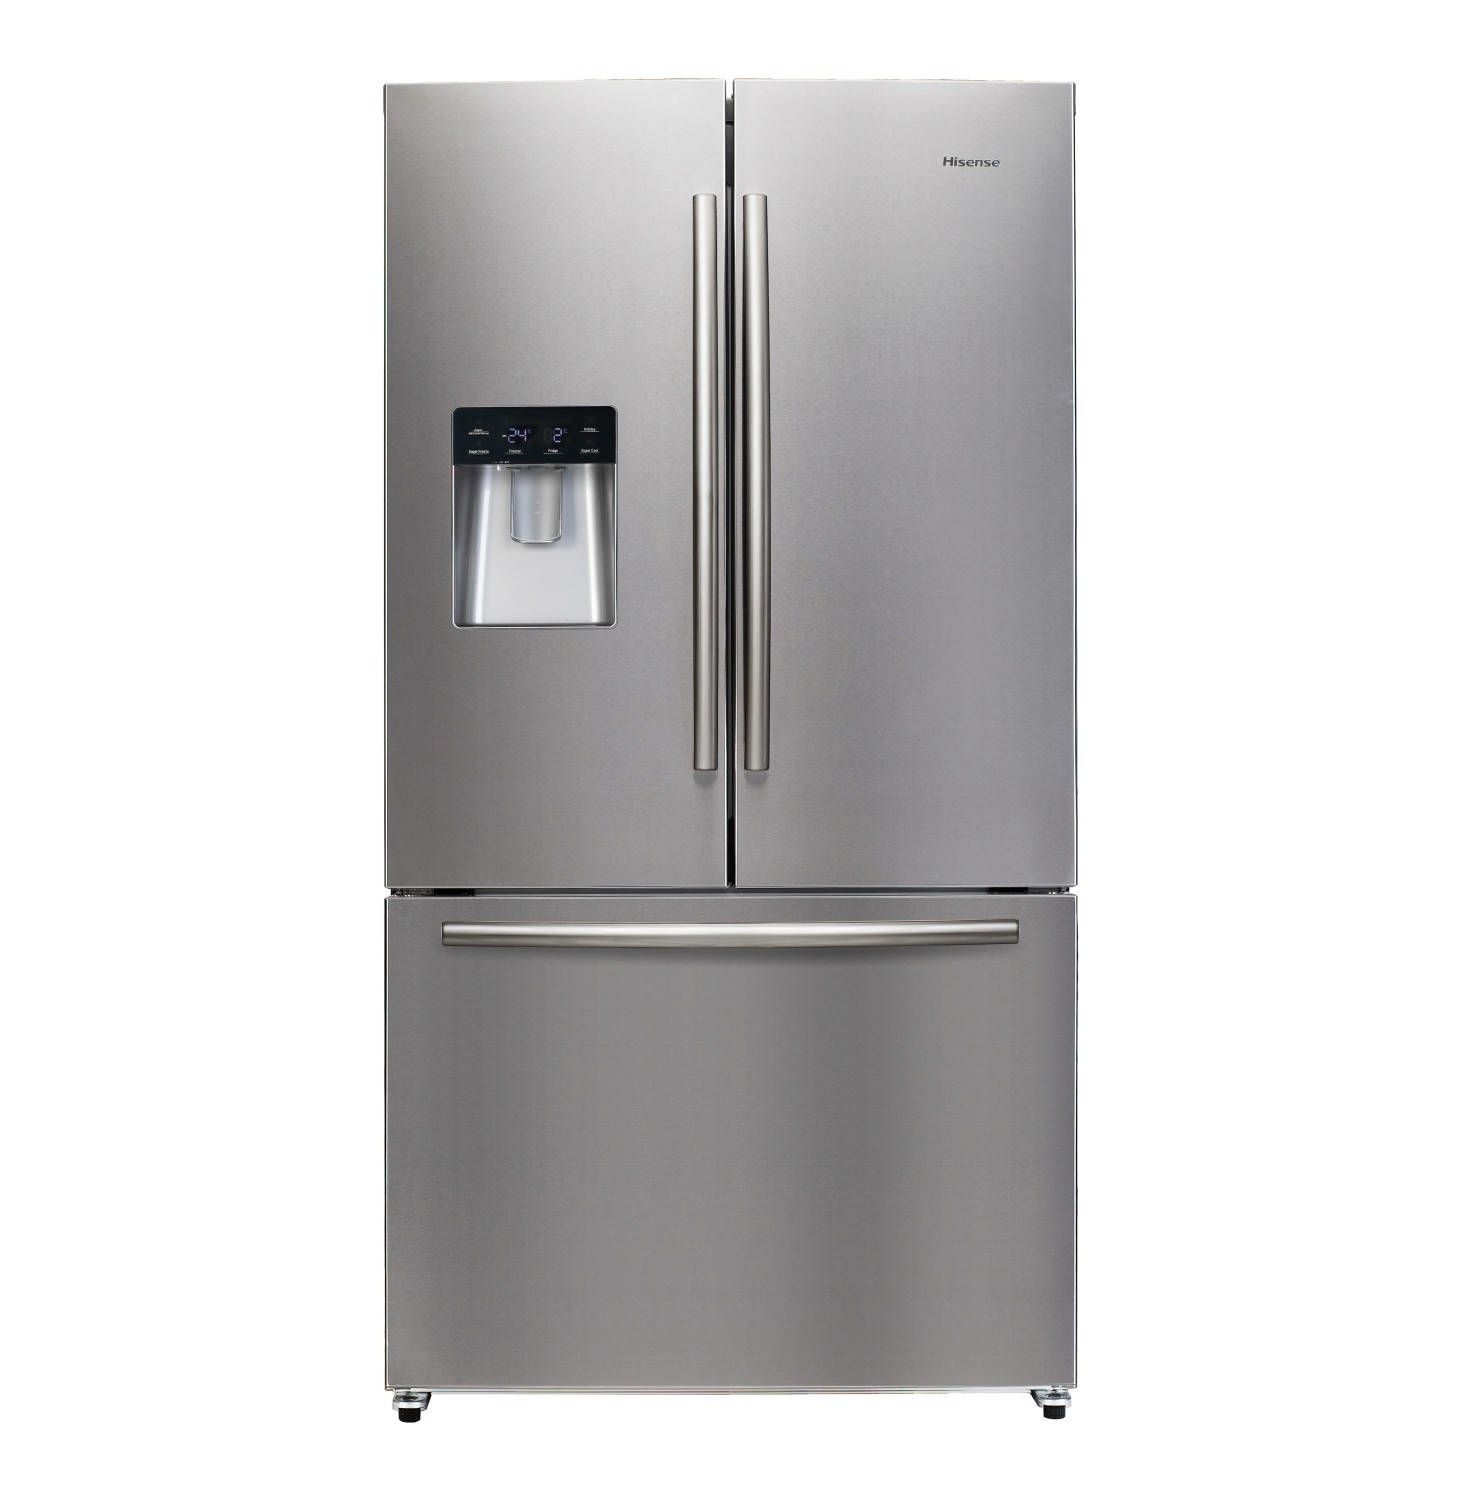 Hisense French Door Fridge Freezer With Water Dispenser Makro Online Fridge French Door French Door Refrigerator French Doors